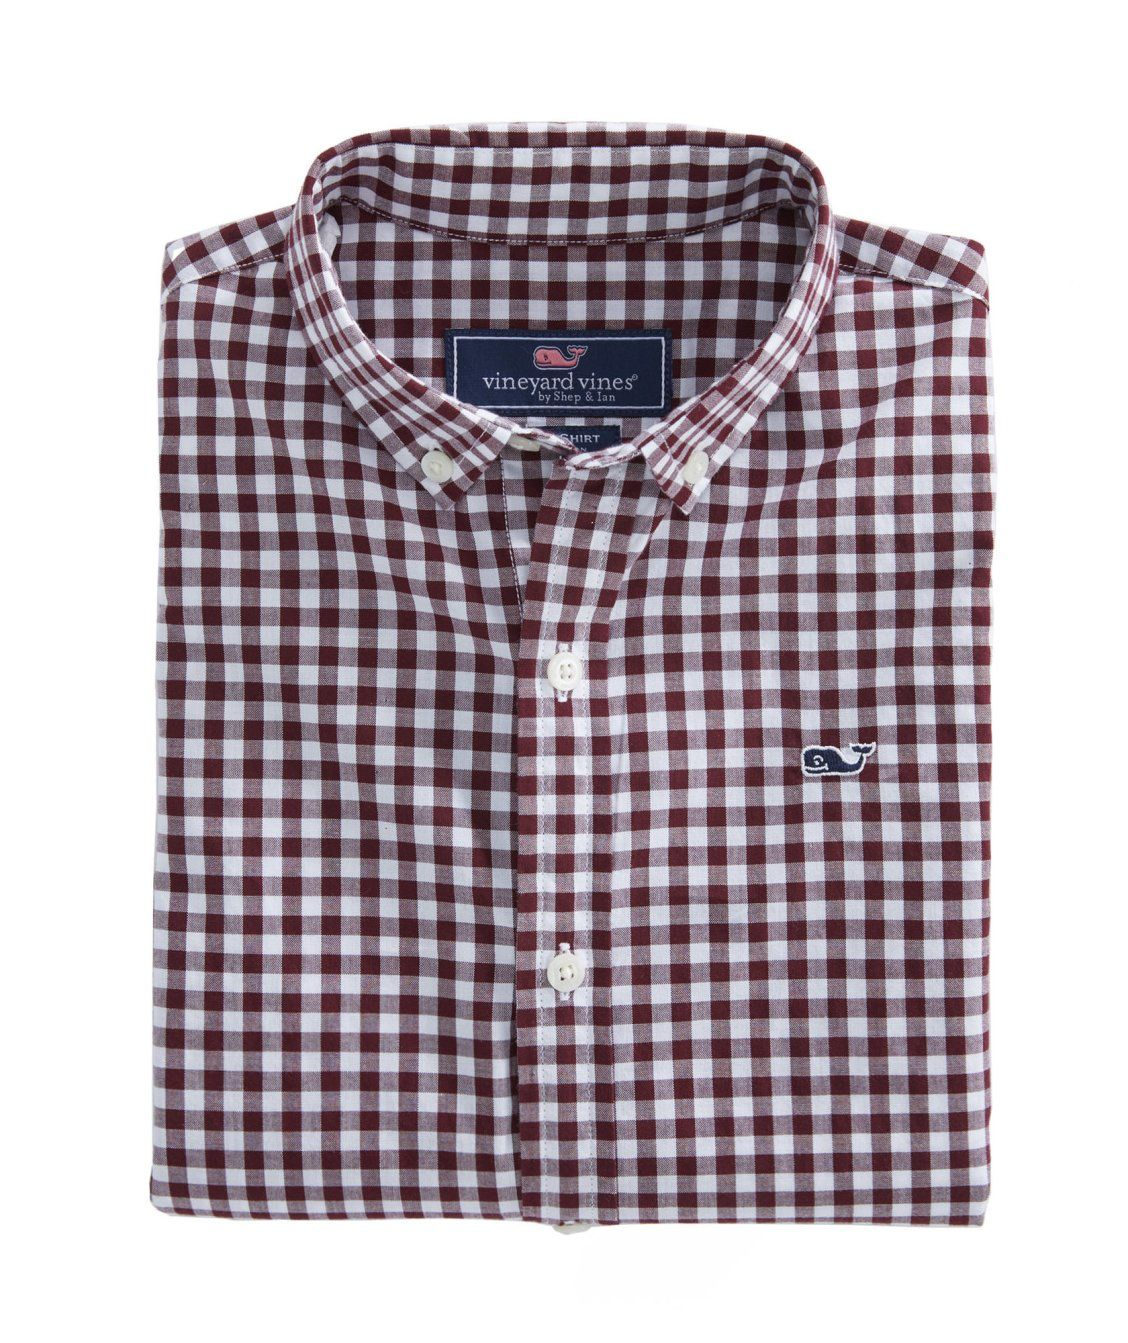 10bb59dc0a1 Boys Grovedale Gingham Whale Shirt | new arrivals | Whale shirt ...